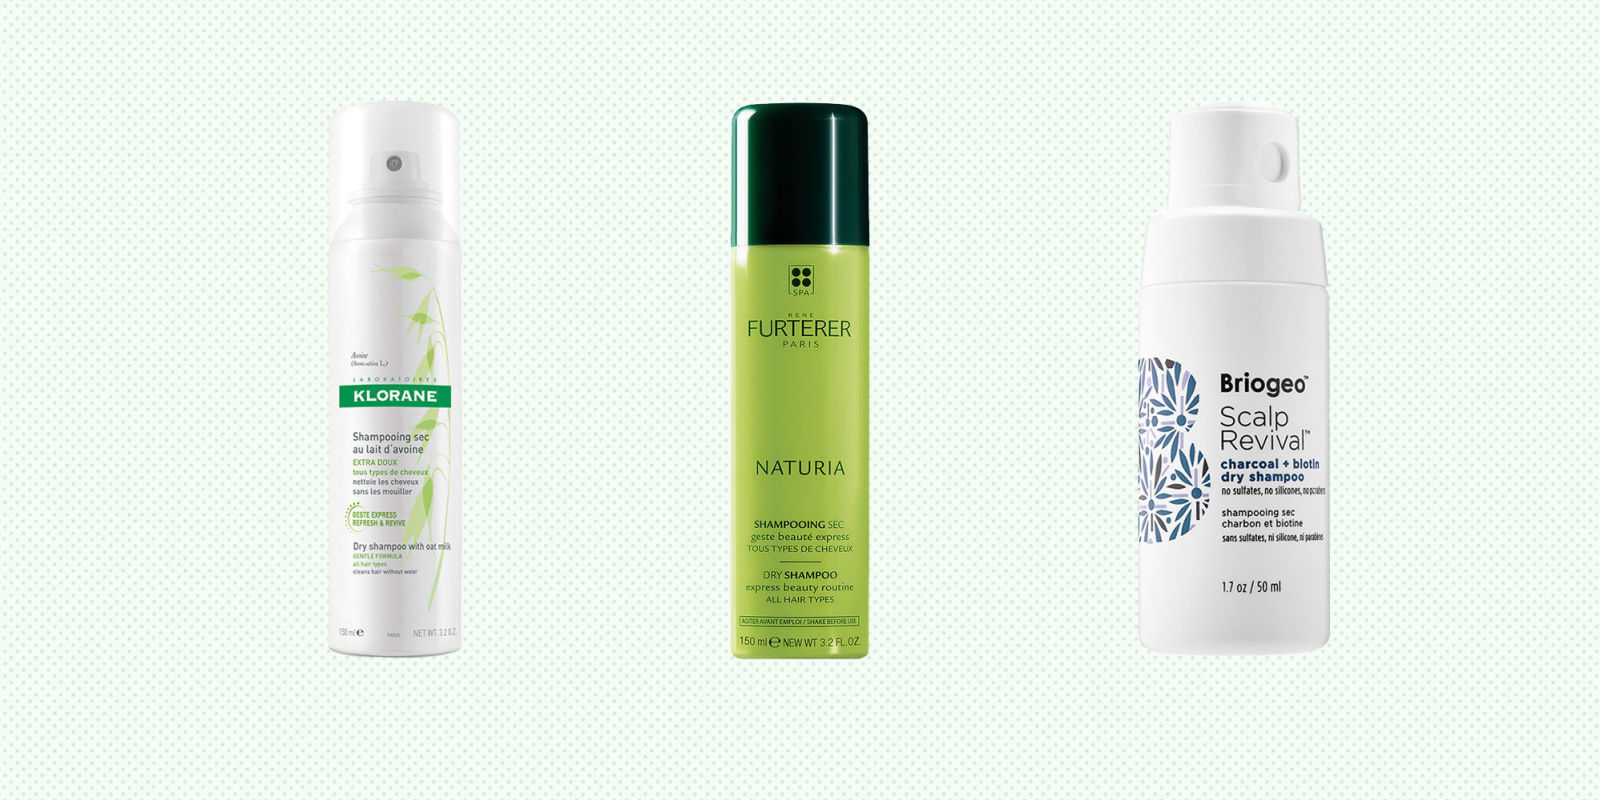 Klorane Dry Shampoo 10 Best Dry Shampoos Of 2017 For Under 30 That Really Work